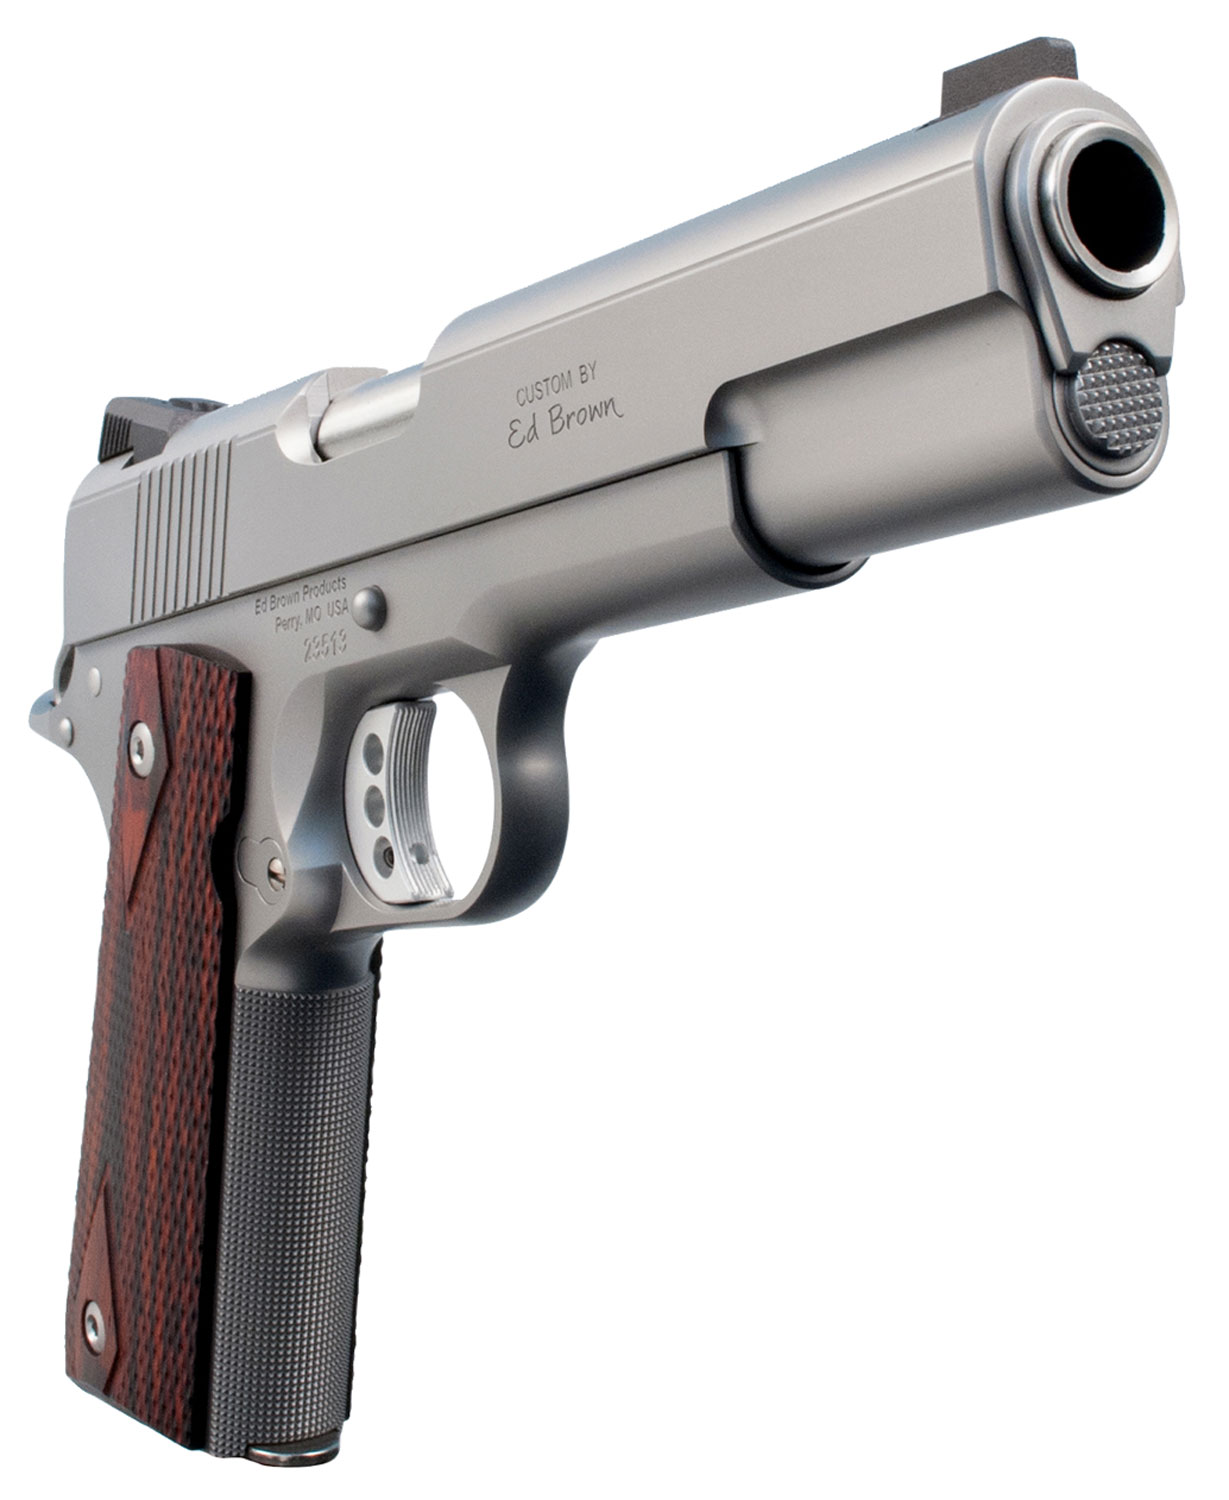 "Ed Brown E18SS Executive Elite Single 45 Automatic Colt Pistol (ACP) 5"" 7+1 Black VZ Grip Stainless Steel"